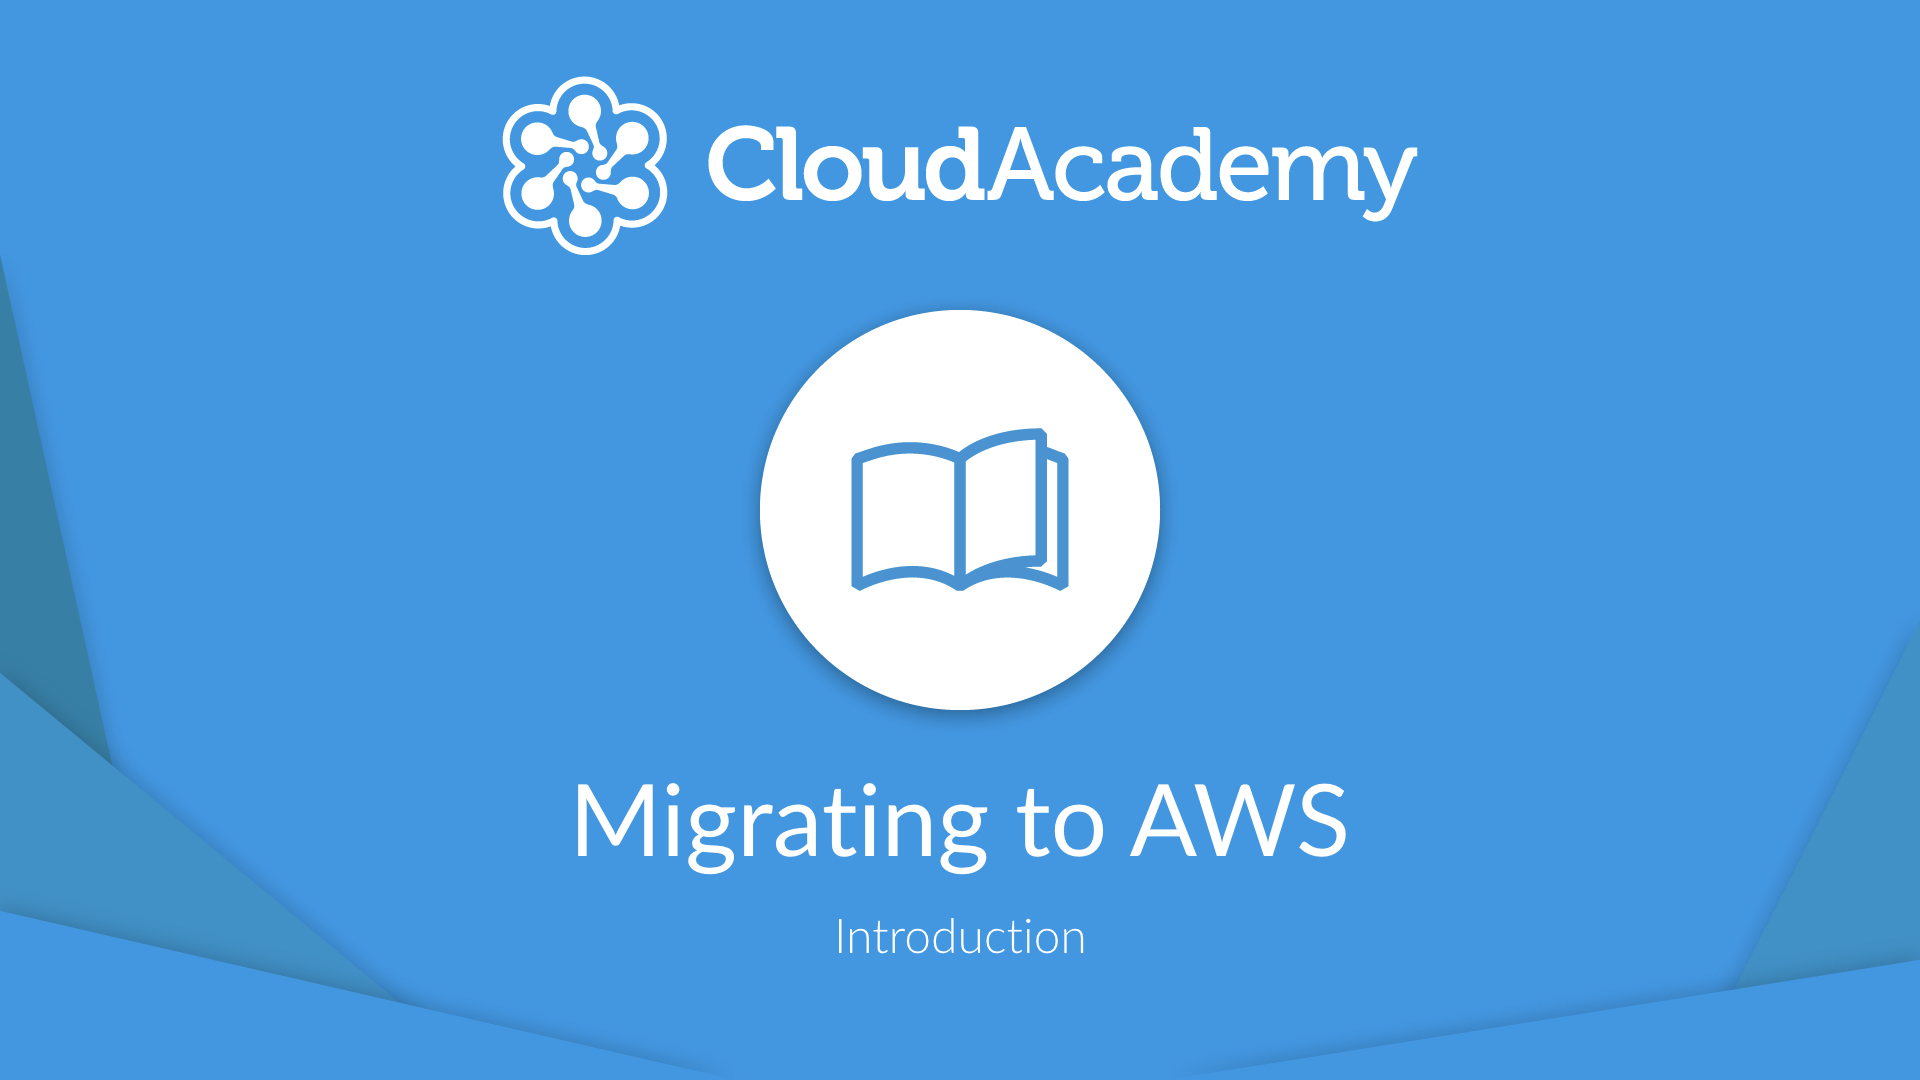 Migrating to AWS - Introduction